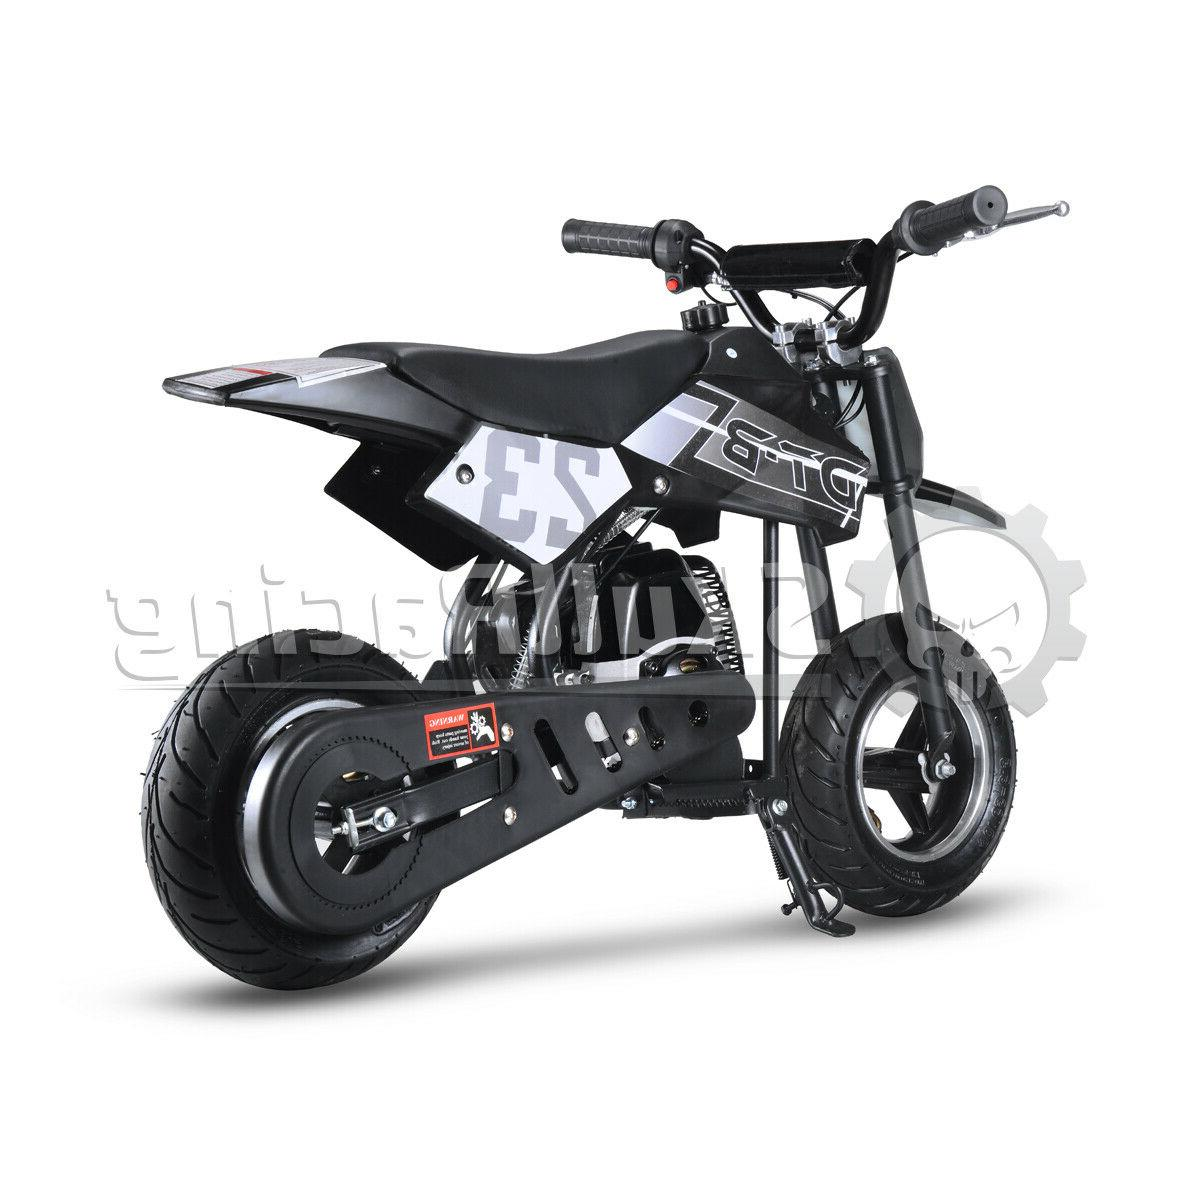 SkullRacing Mini Motorcycle